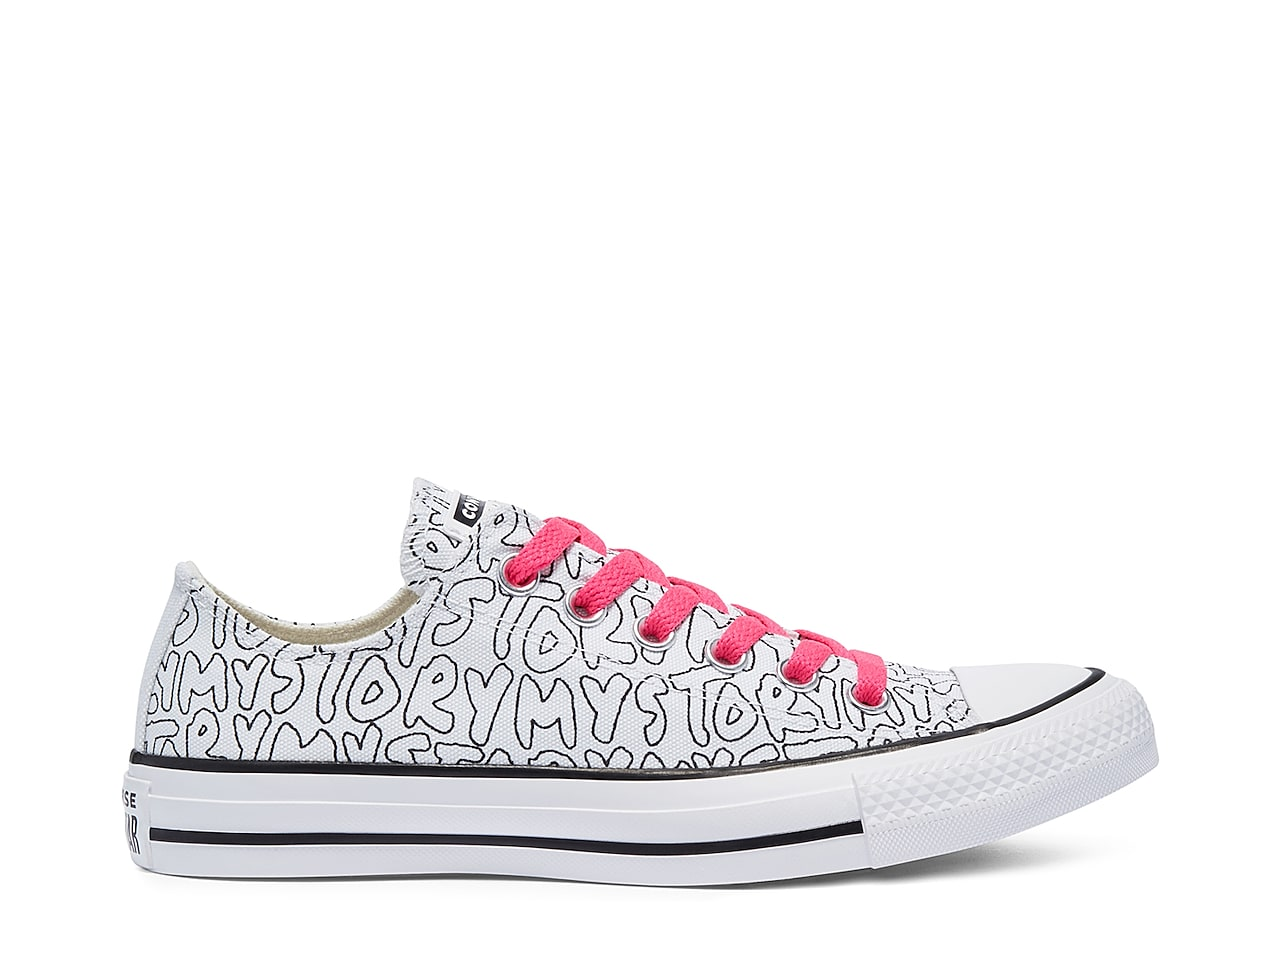 Converse Chuck Taylor All Star My Story Oxford Sneaker - Women's